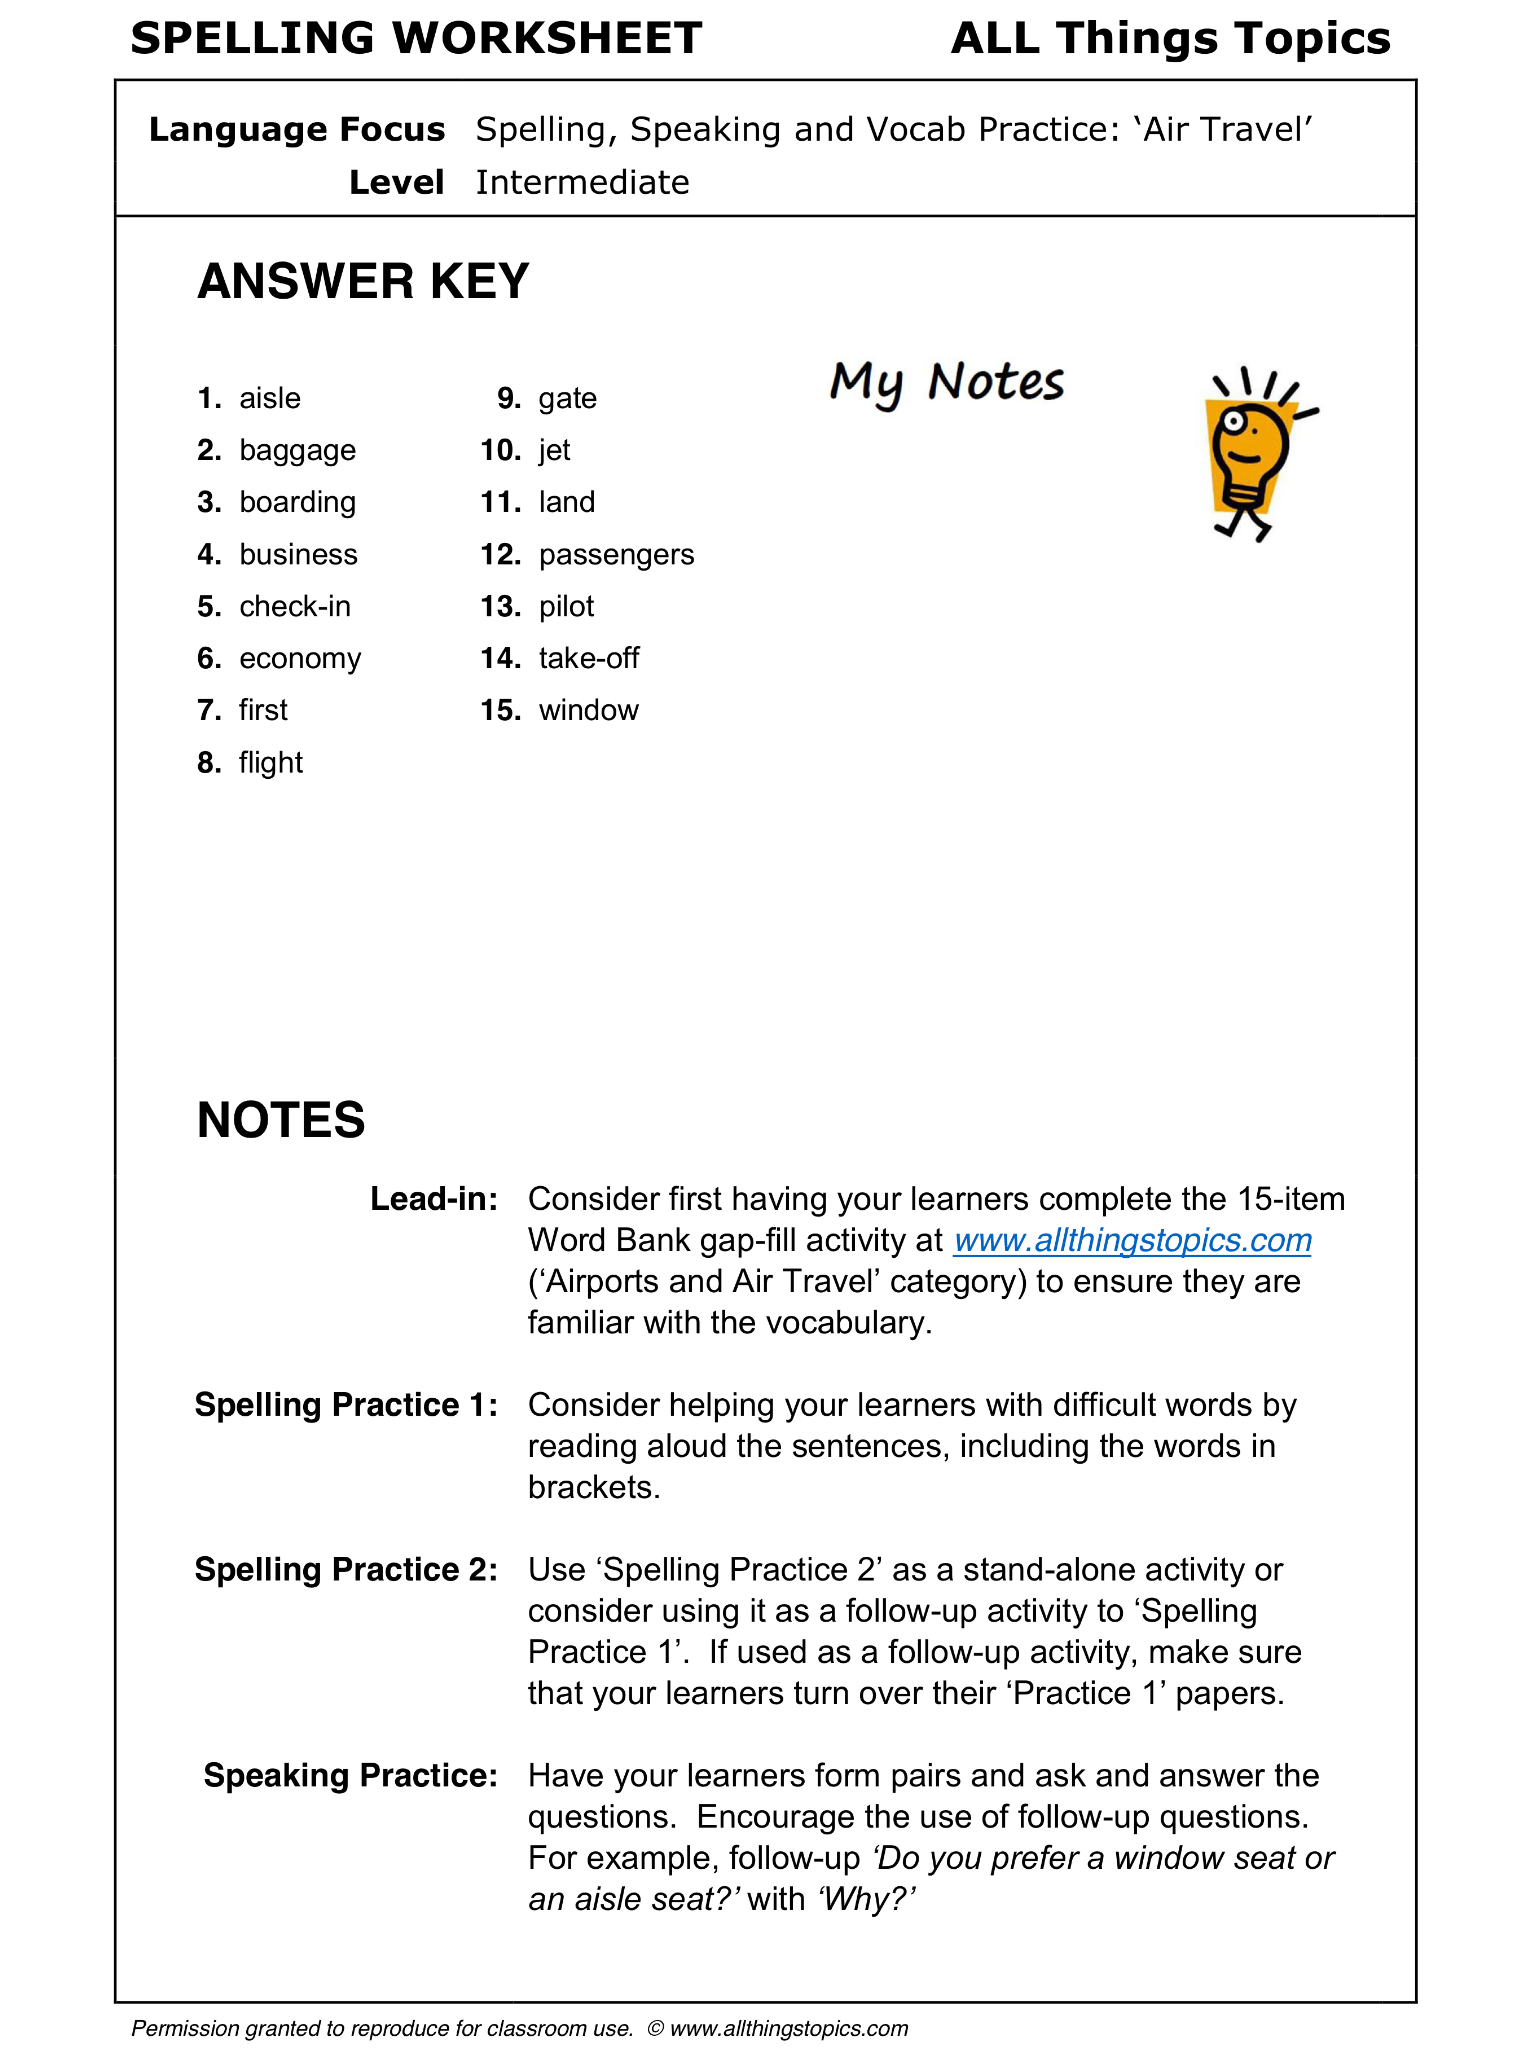 worksheet Learn English Worksheets spelling worksheet speaking and vocab practice places around airports air travel 1 2 english learning english